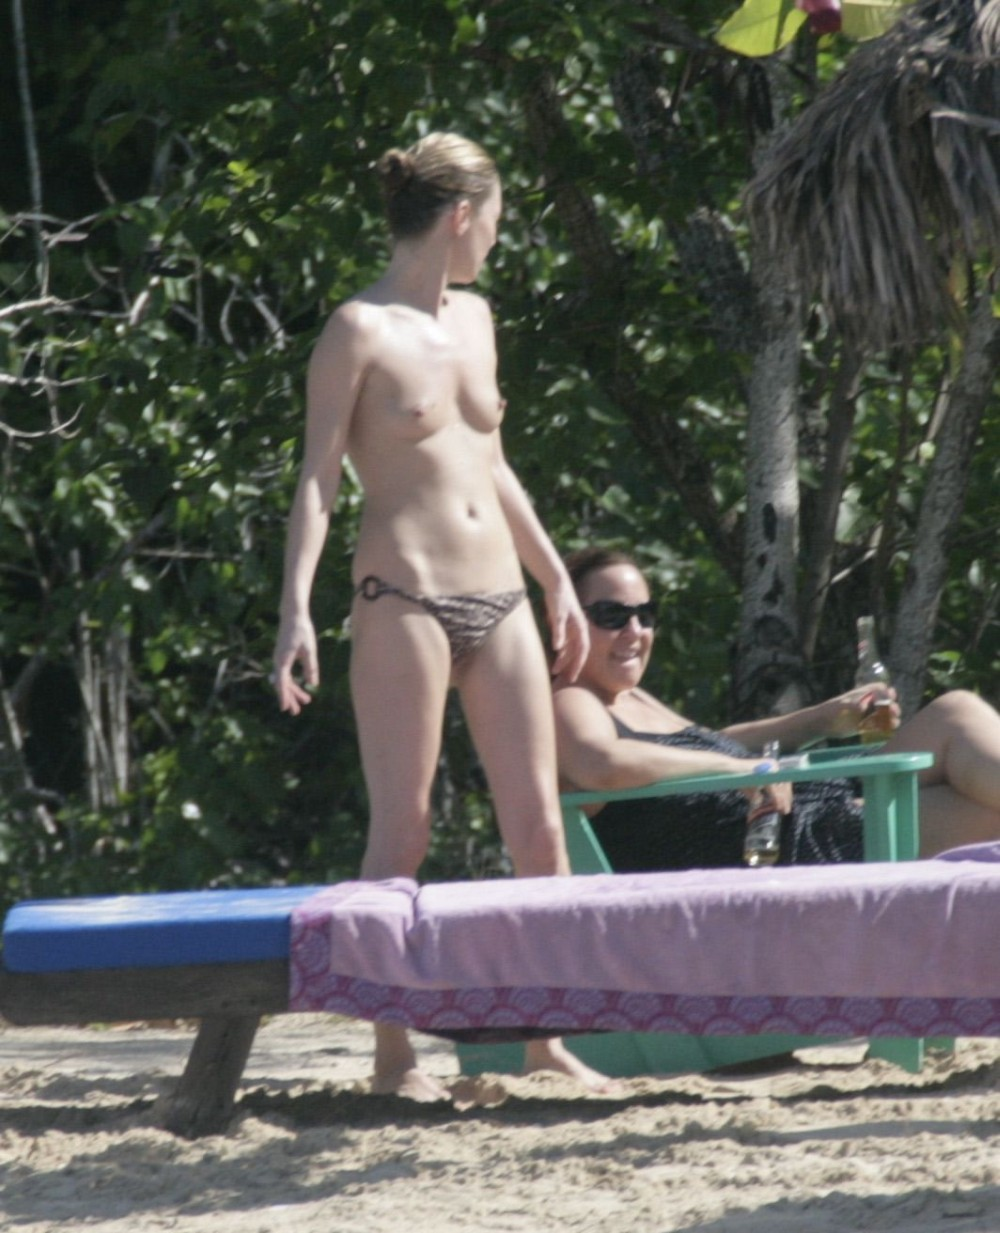 kate moss topless beach%2Bagain 004 The 35 minute film is more an extended music video than a proper movie, ...